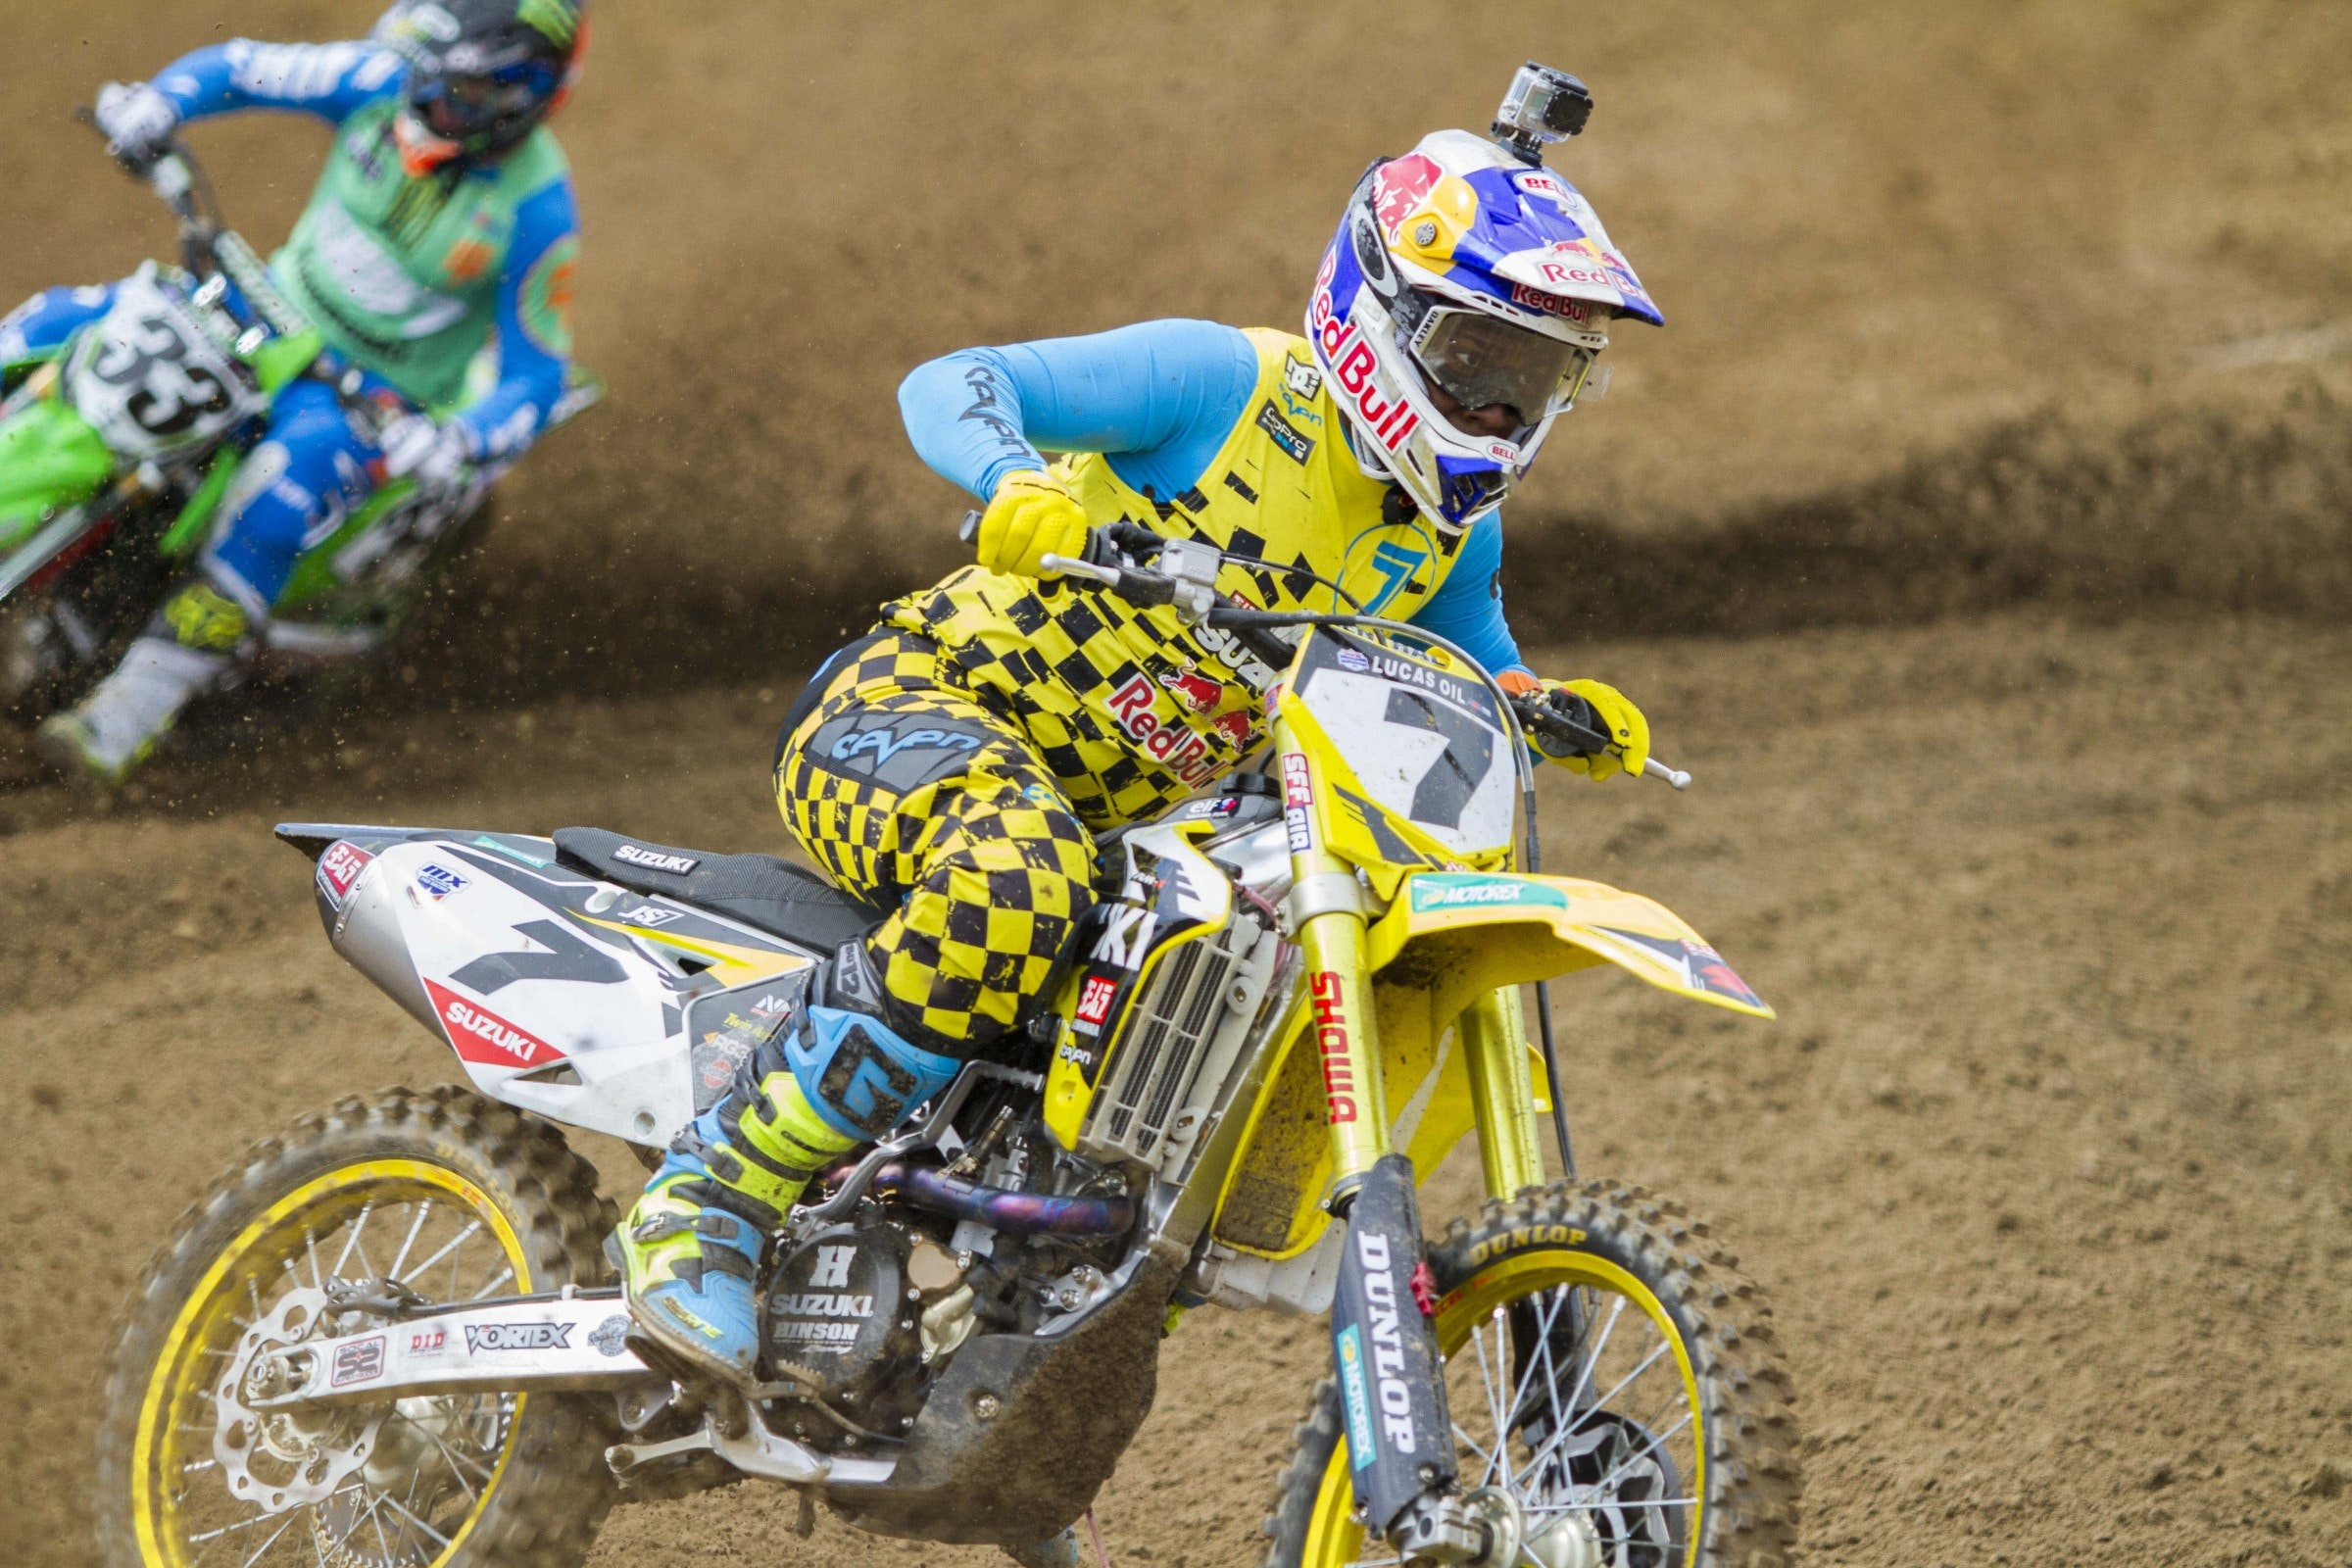 How will Stewart do in his return to Lucas Oil Pro Motocross?